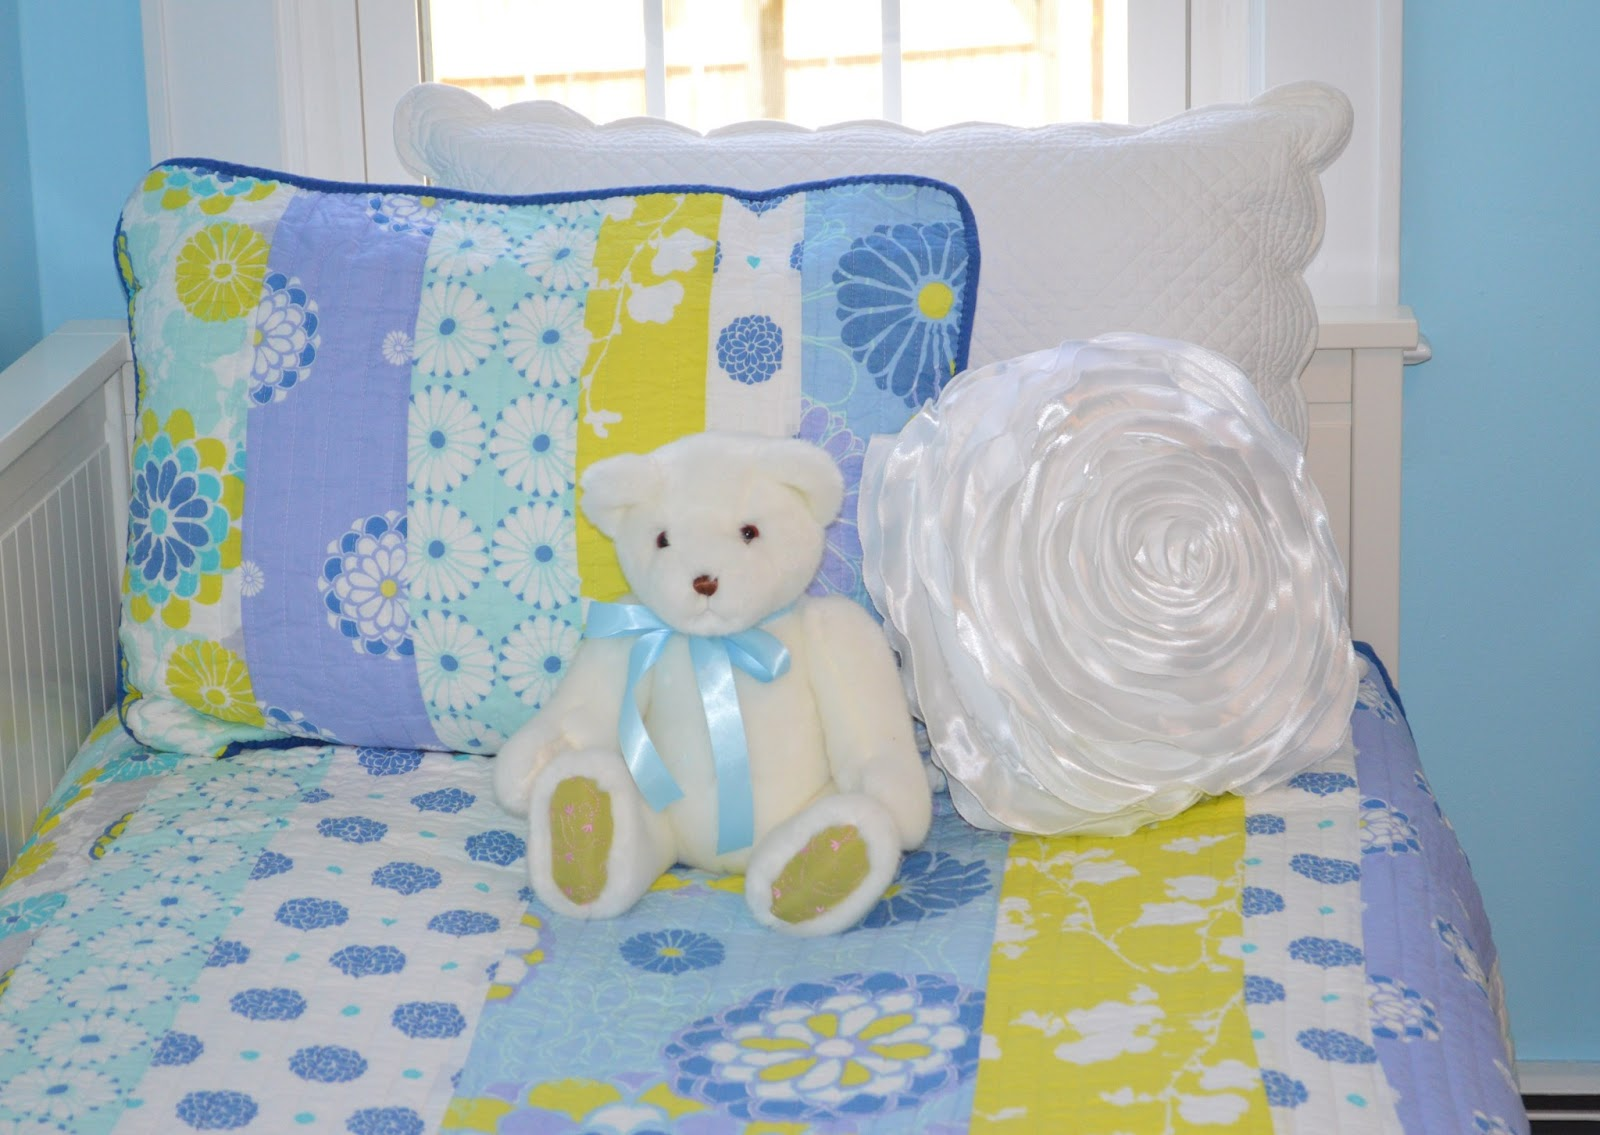 Blue GIrl's Bedroom With teddy bear on bed